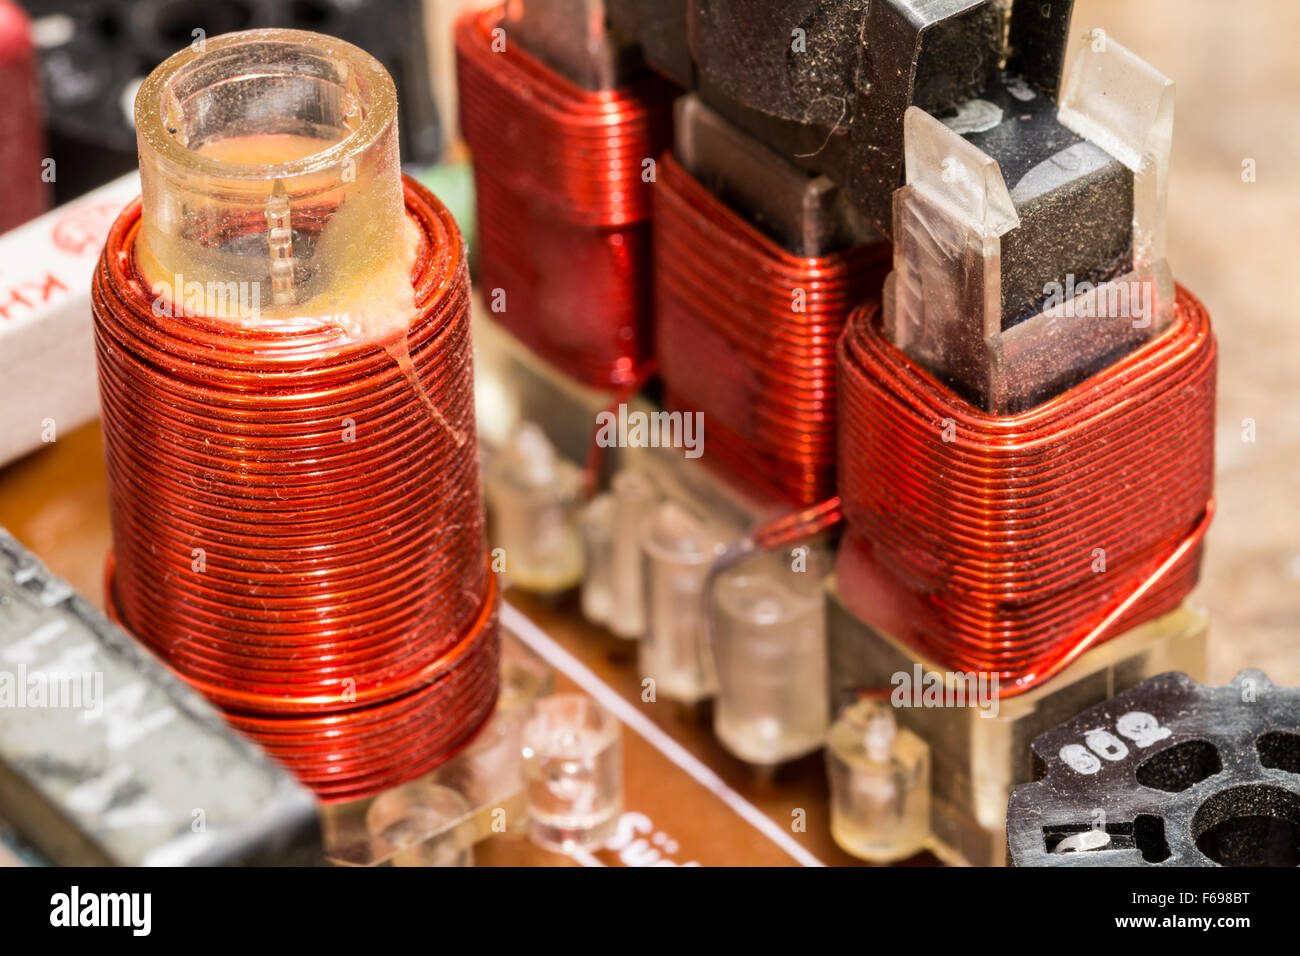 RF coils in a radio circuit - various electronic components - Stock Image